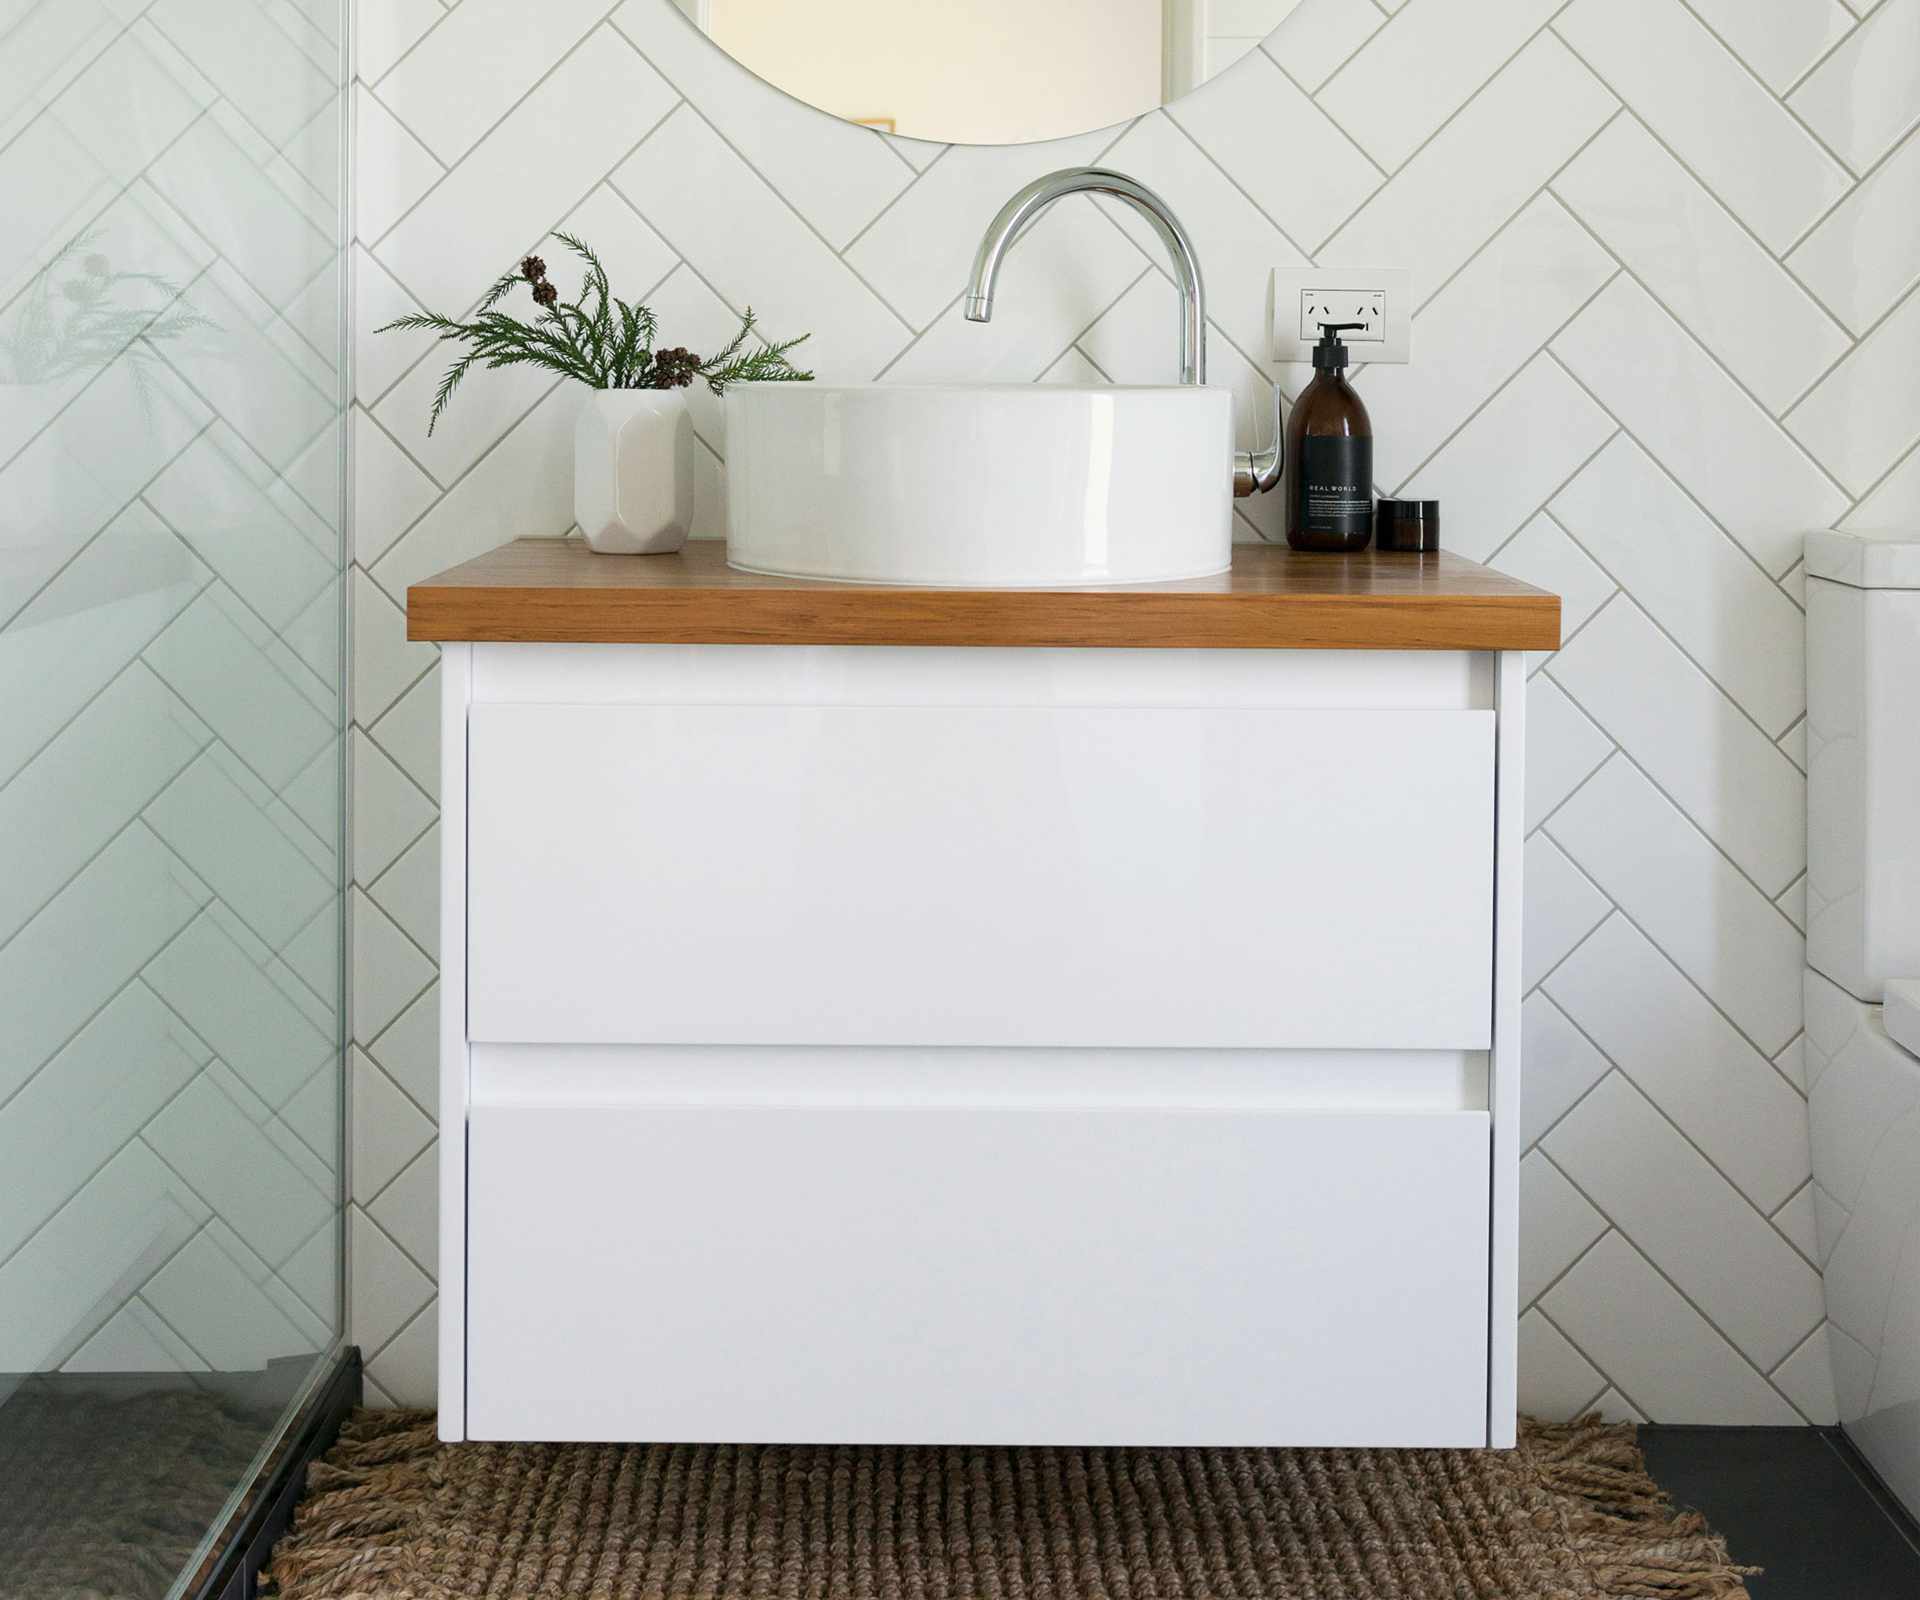 5 Best Bathroom Vanity Designs To Match Your Style for sizing 1920 X 1600